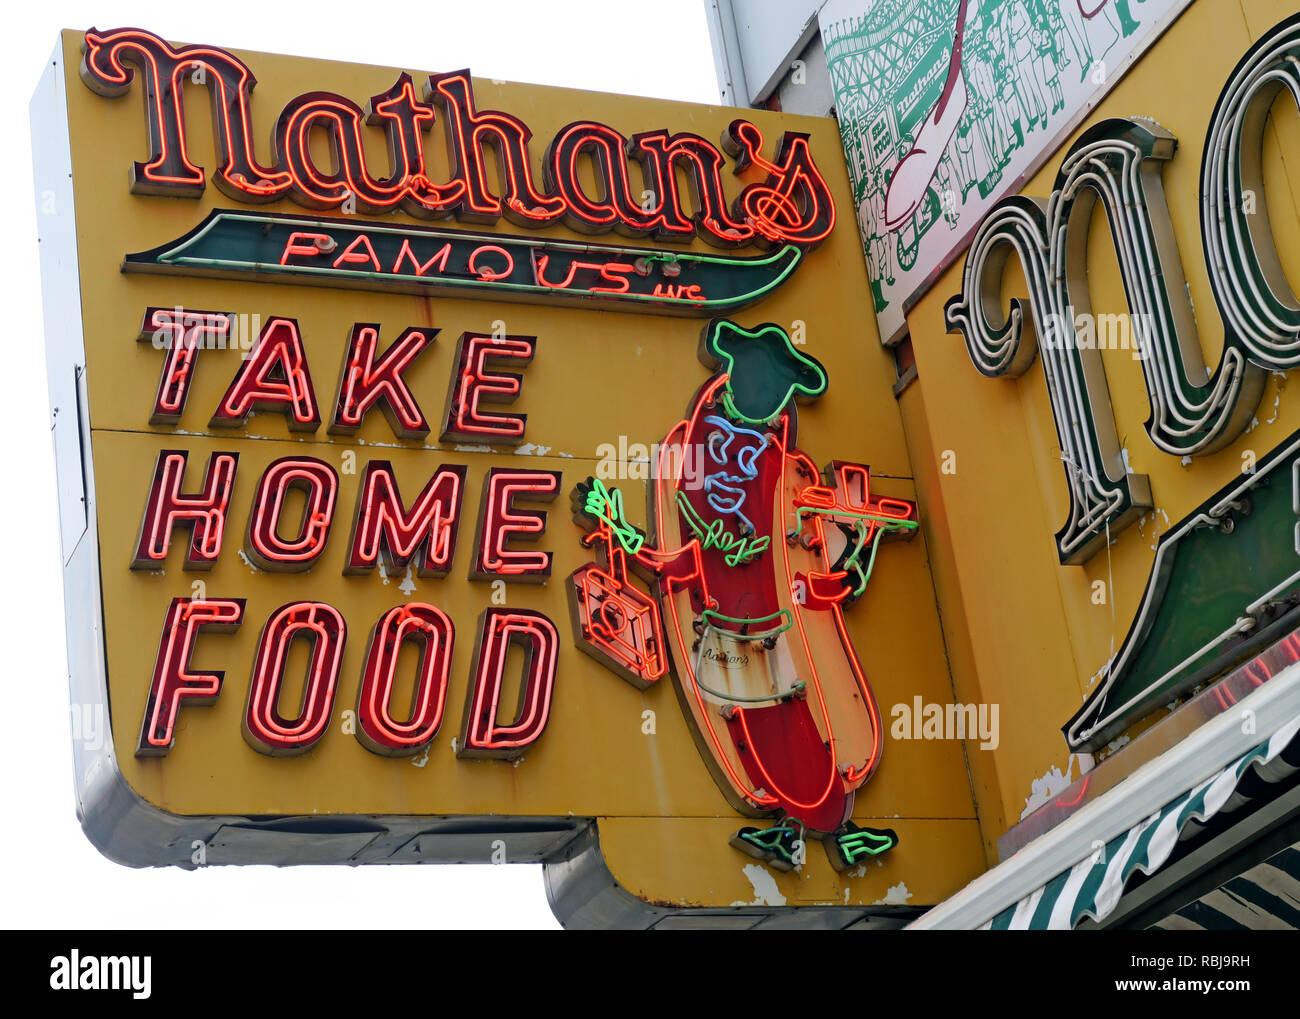 Nathans Handwerker Famous Hotdog Frankfurters Original Restaurant, Deli, Fast Food, Coney Island, Borough of Brooklyn, New York, NY, USA - Stock Image